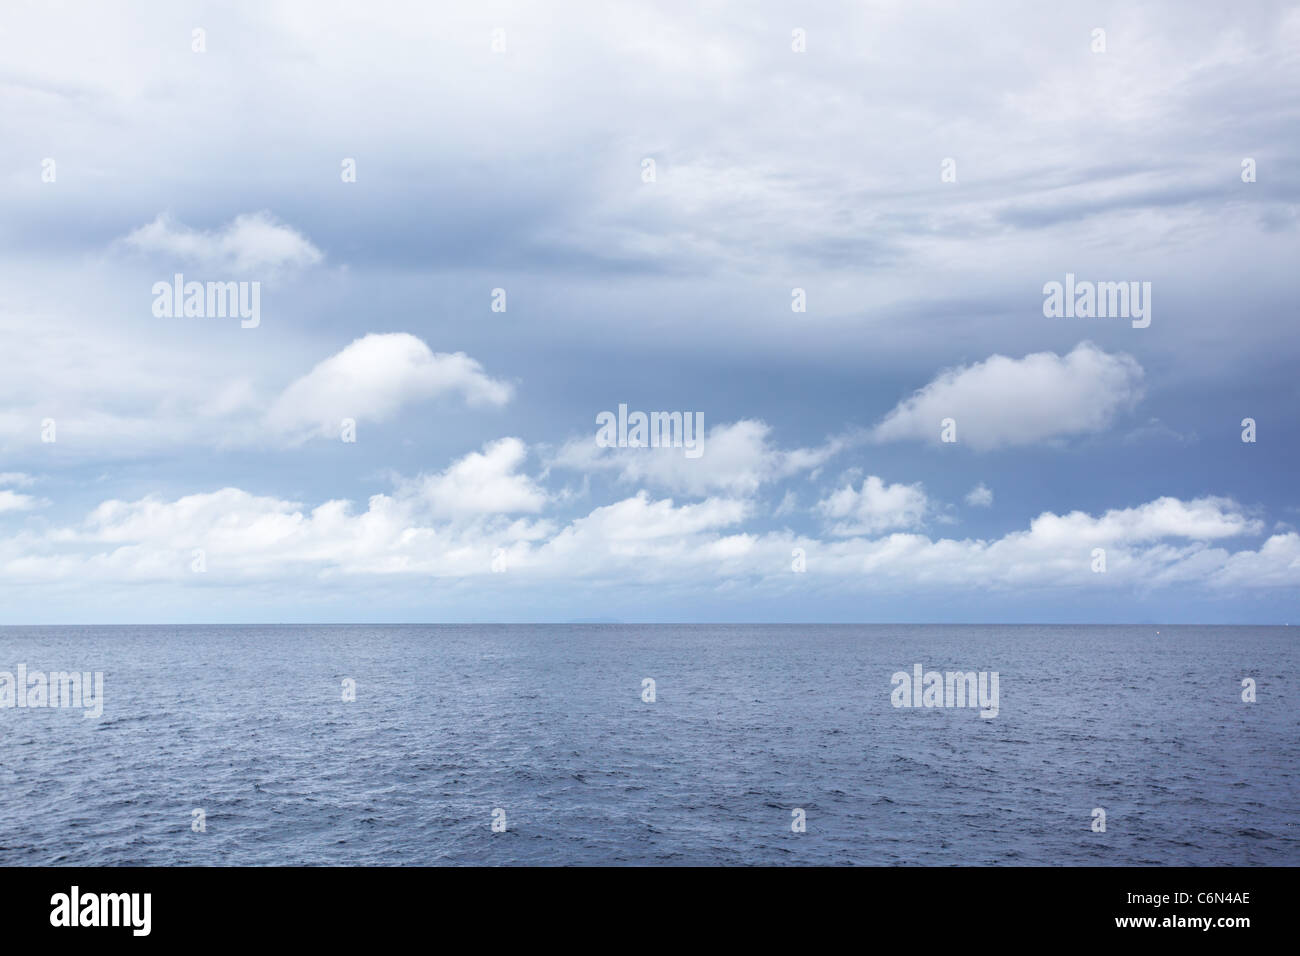 Sea at overcast day, may be used as background - Stock Image